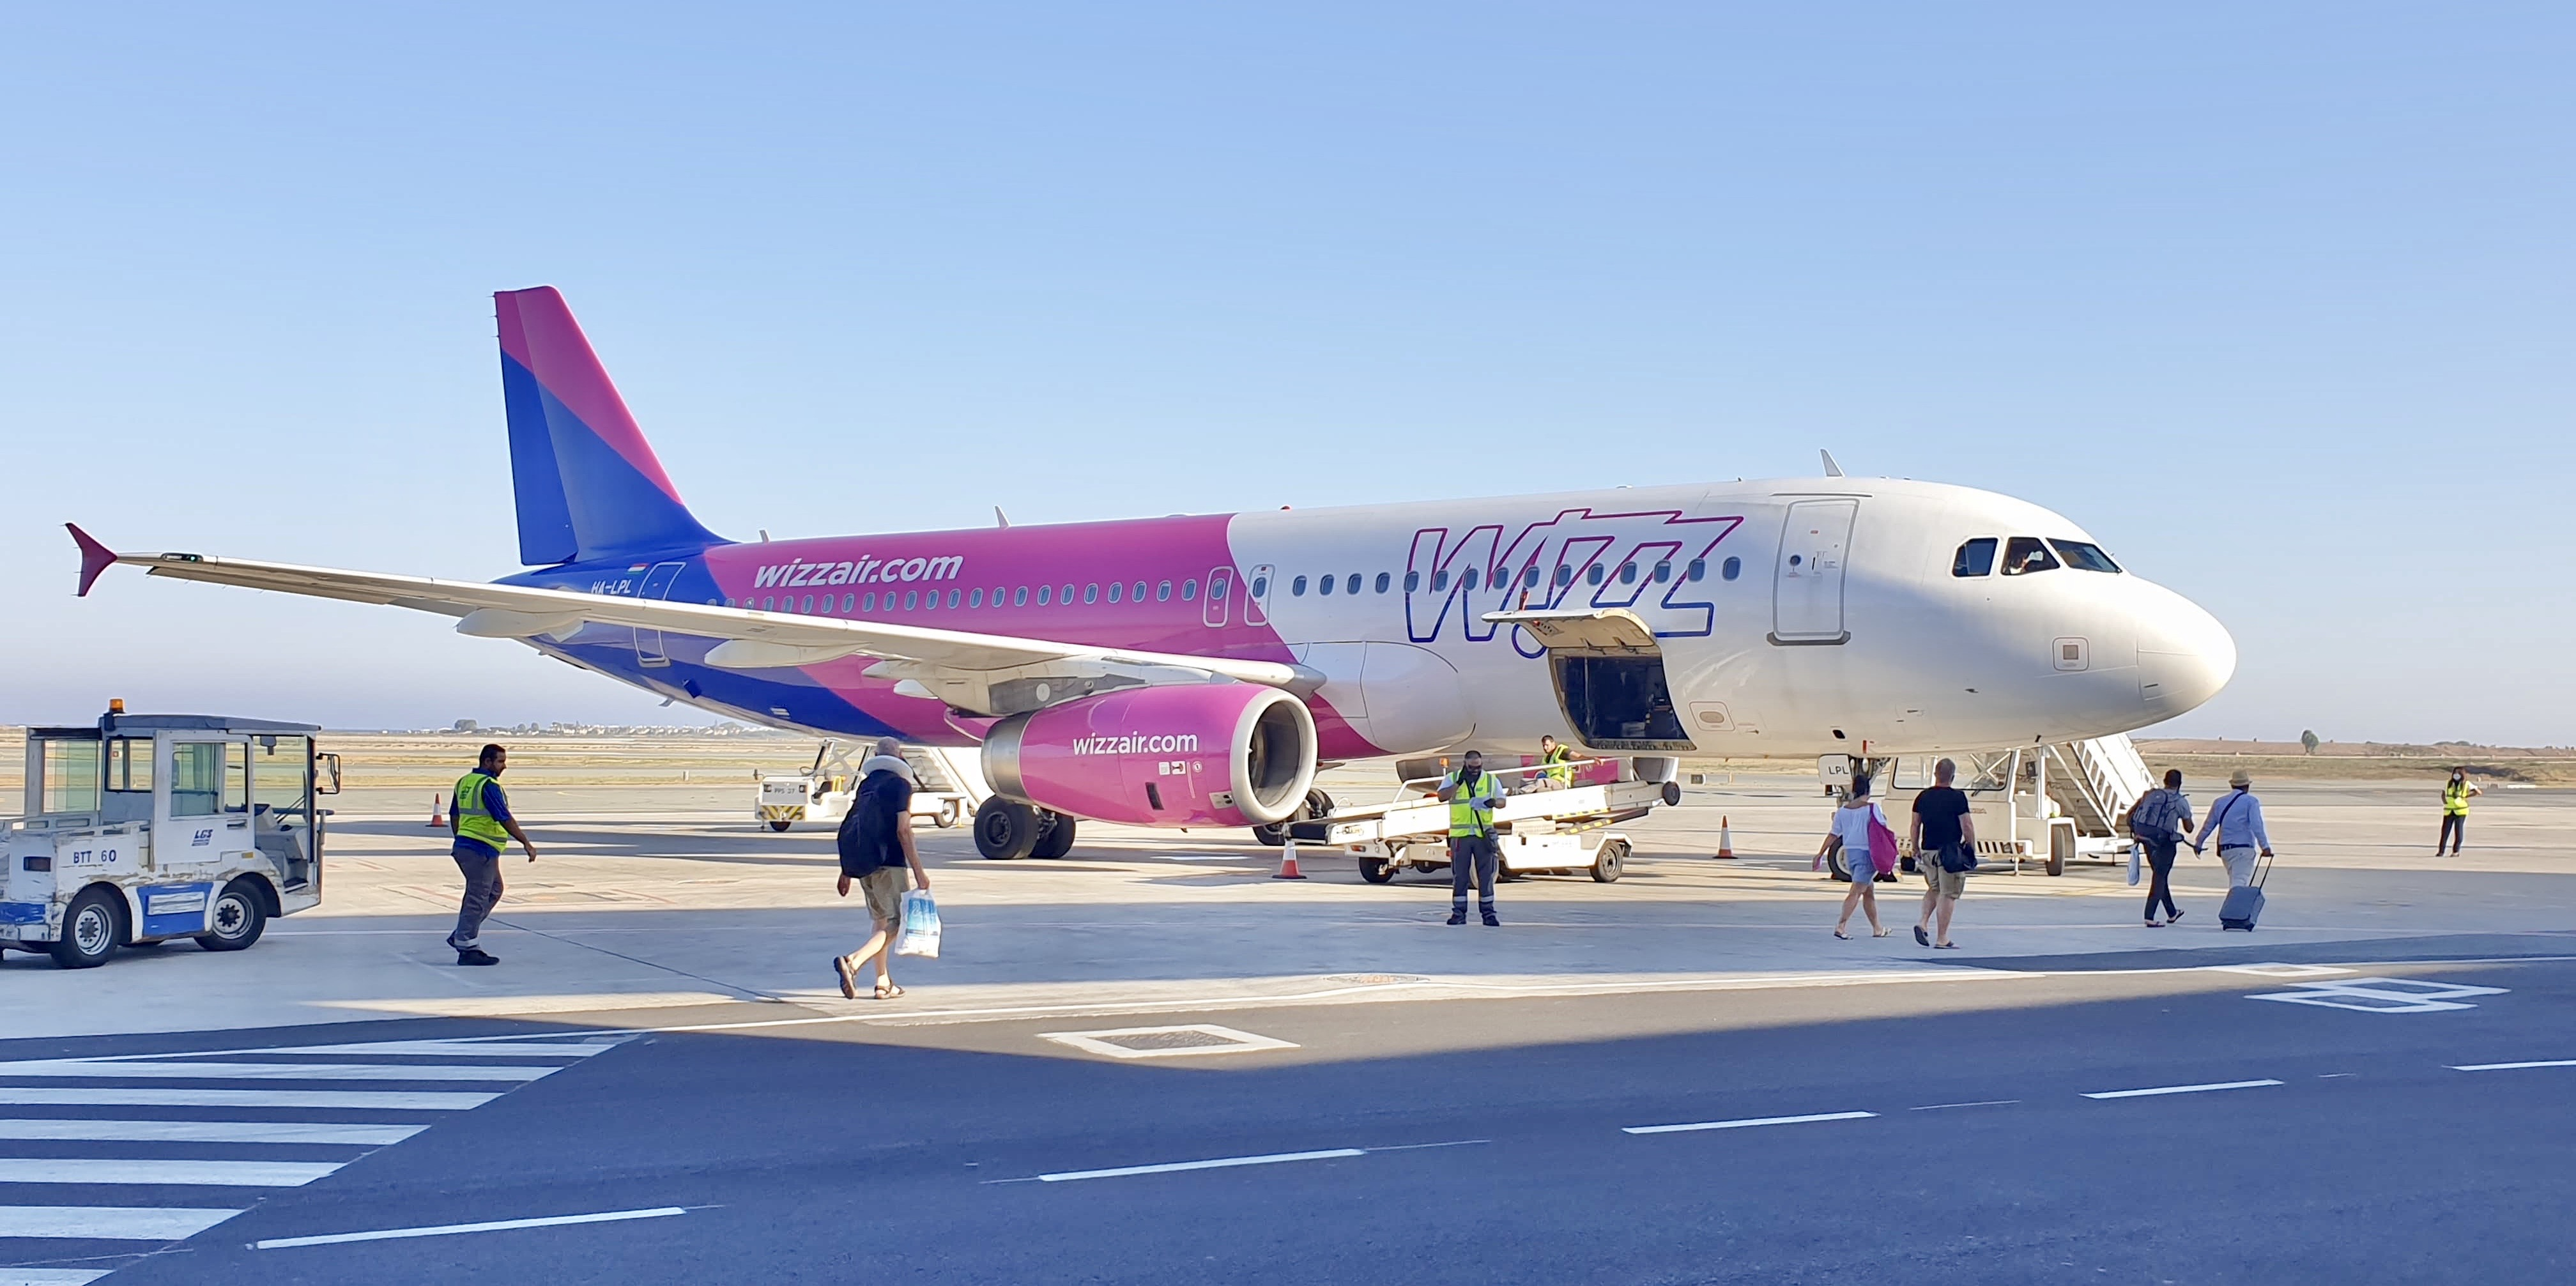 Wizz Air fly (foto: Per Heide)